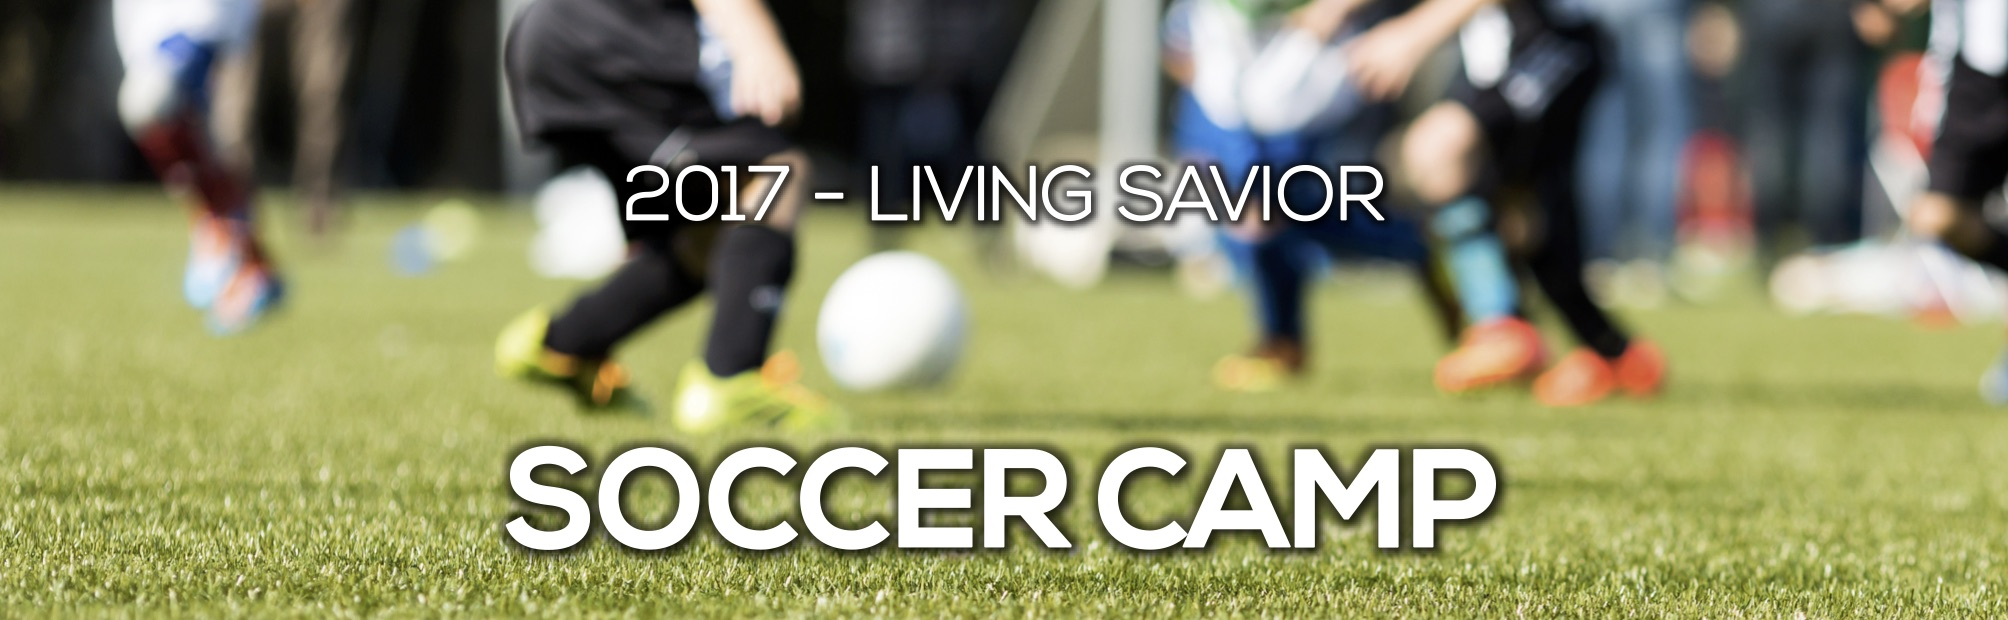 soccer camp web header 2017